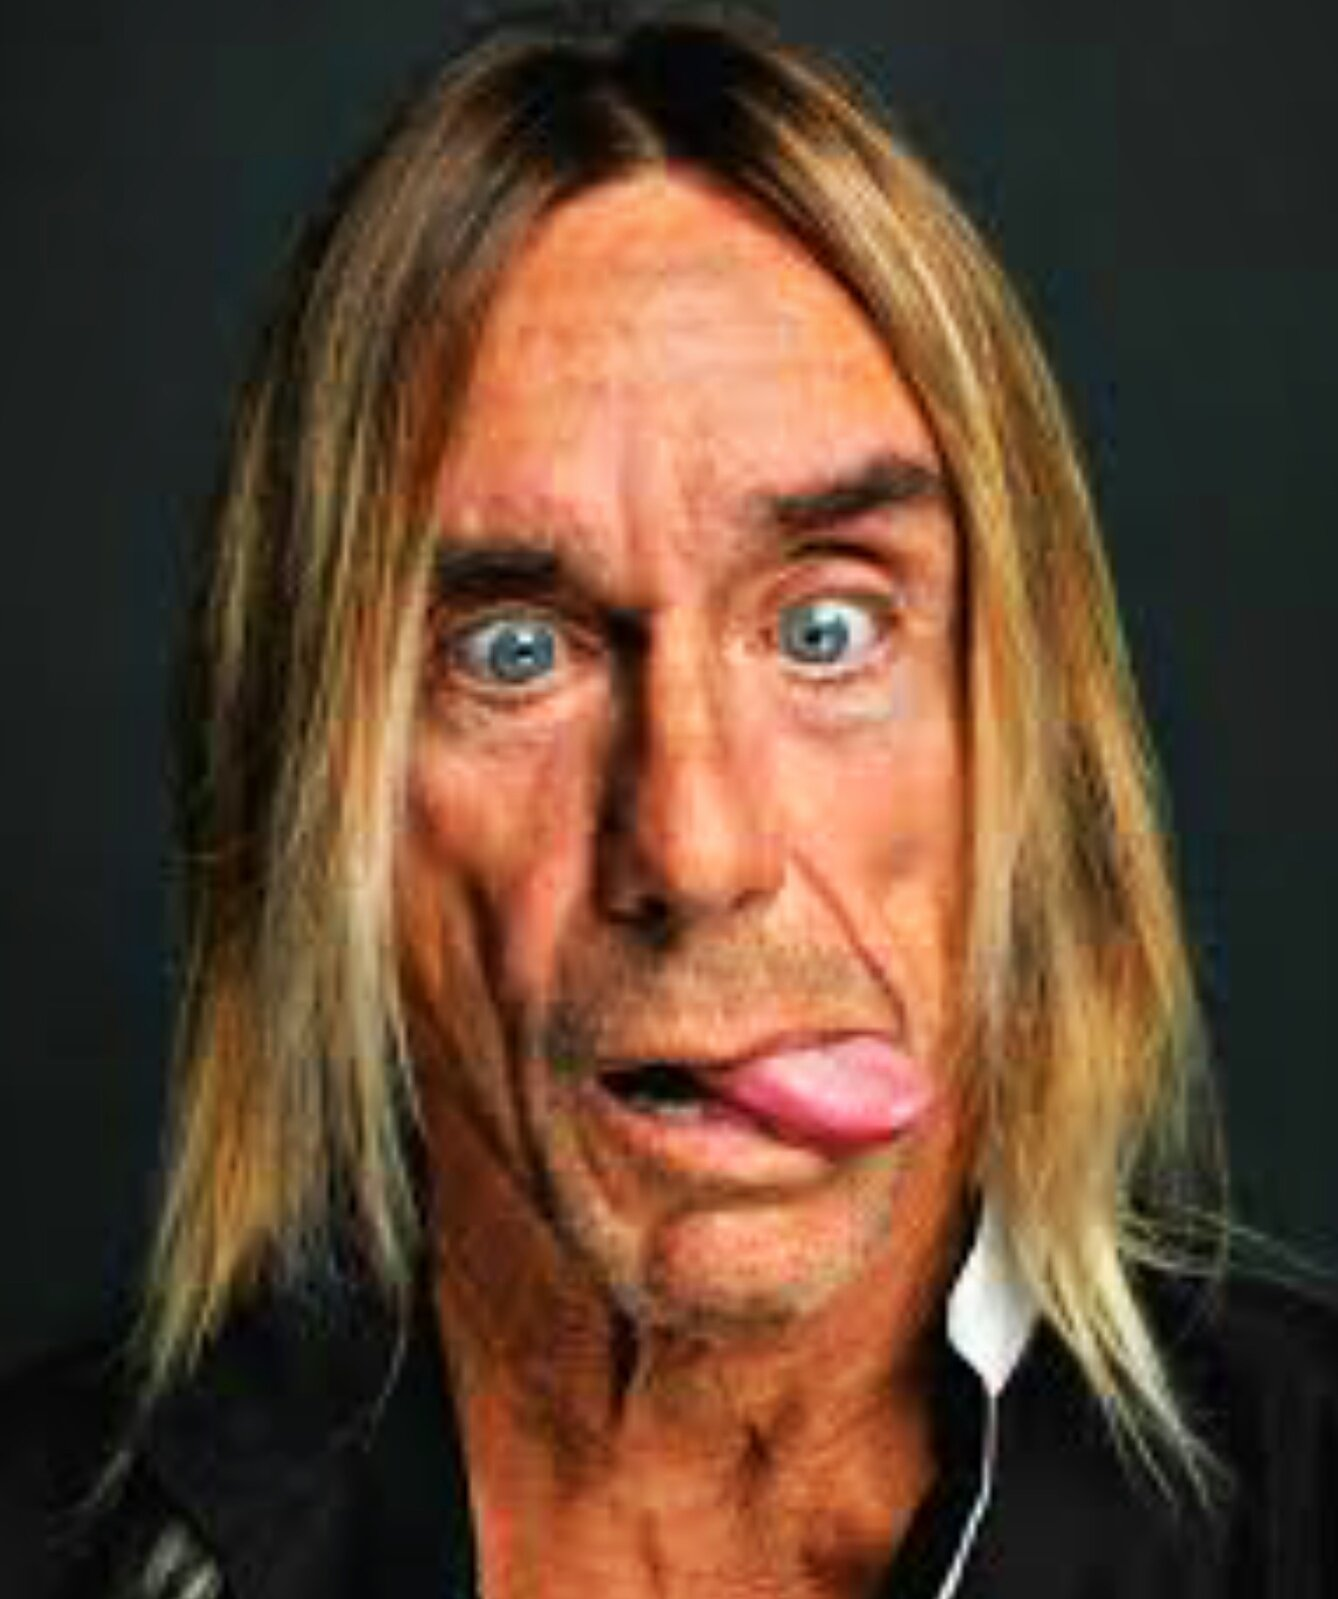 You know this passenger? Well, today he\s 70! Happy birthday Iggy Pop And everything looks good tonight